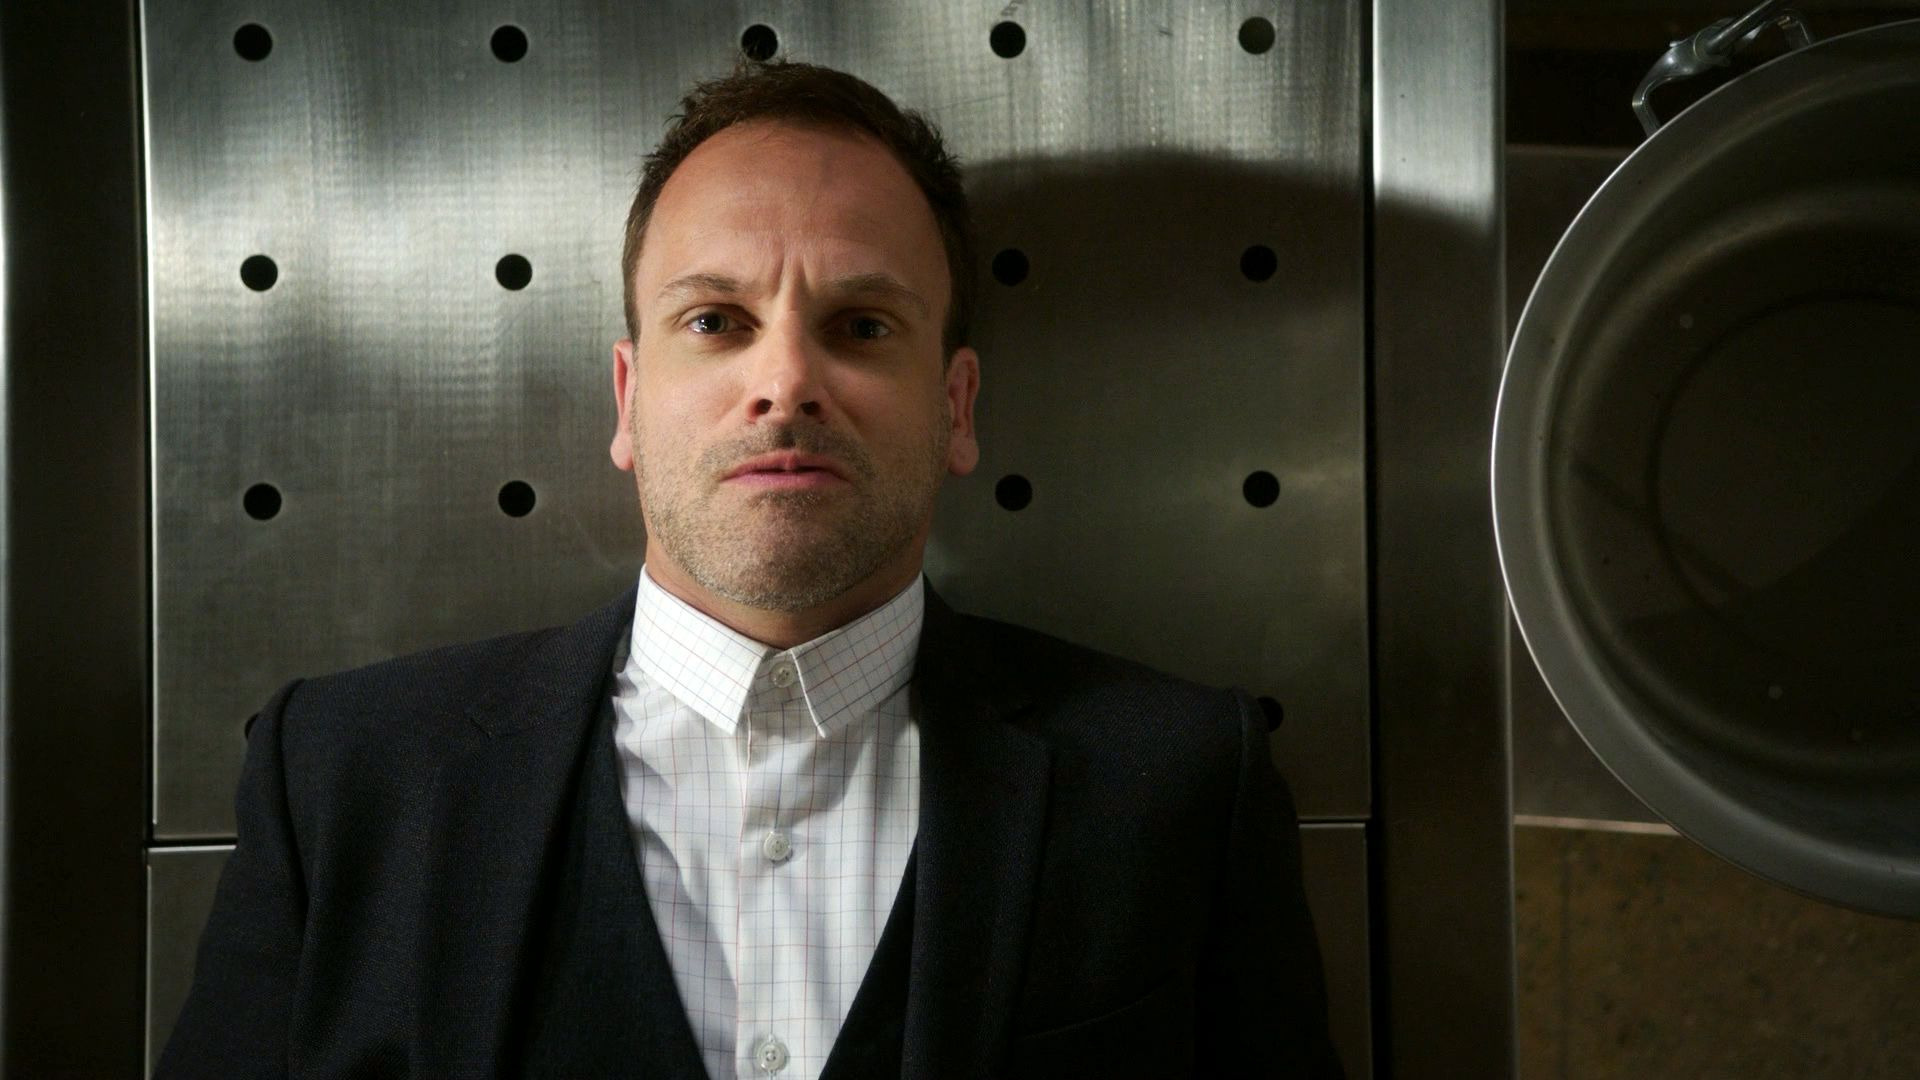 Elementary — s06e01 — An Infinite Capacity for Taking Pains